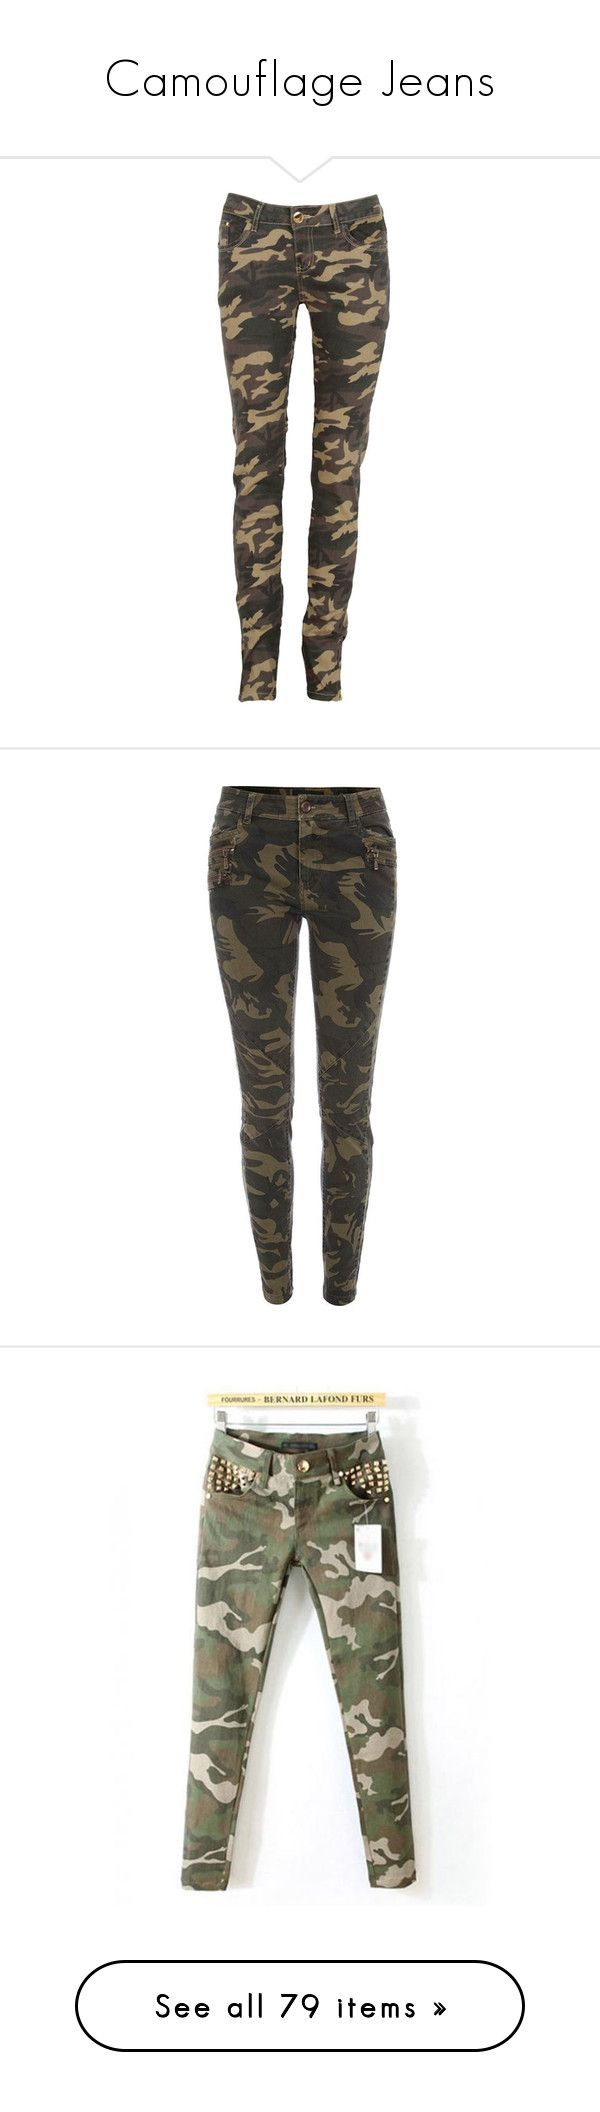 """""""Camouflage Jeans"""" by awesomepandadude ❤ liked on Polyvore featuring pants, bottoms, jeans, trousers, leggings, brown trousers, brown pants, military camouflage pants, military camo pants and military trousers"""